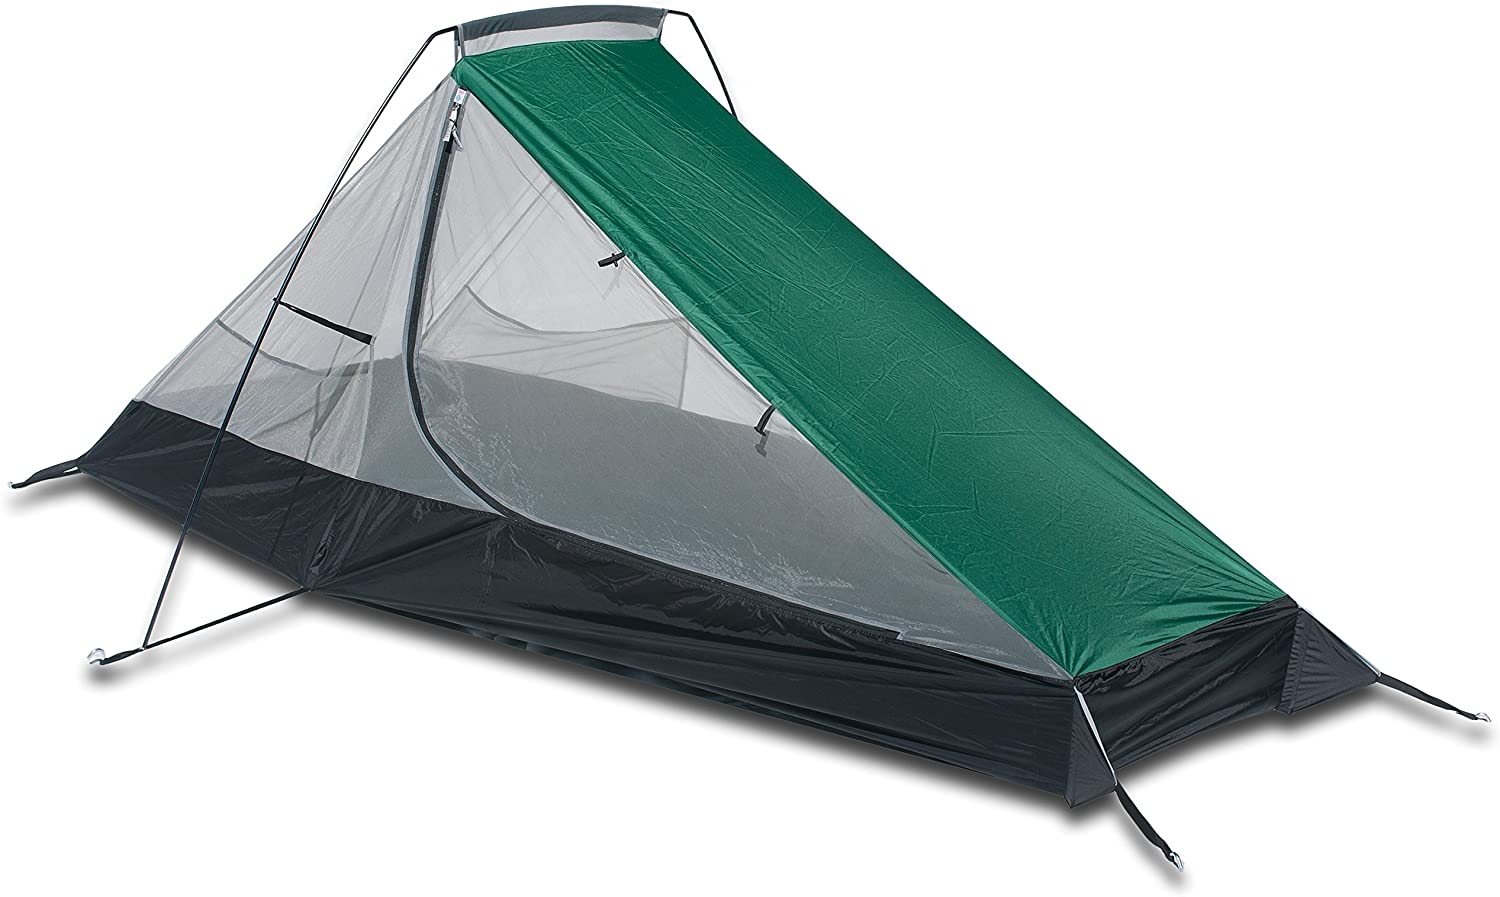 Aqua Quest WEST Coast Bivy – Breathable Ultralight Pop up Tent for 1 or 2 Person Shelter, Quick and Easy Set up